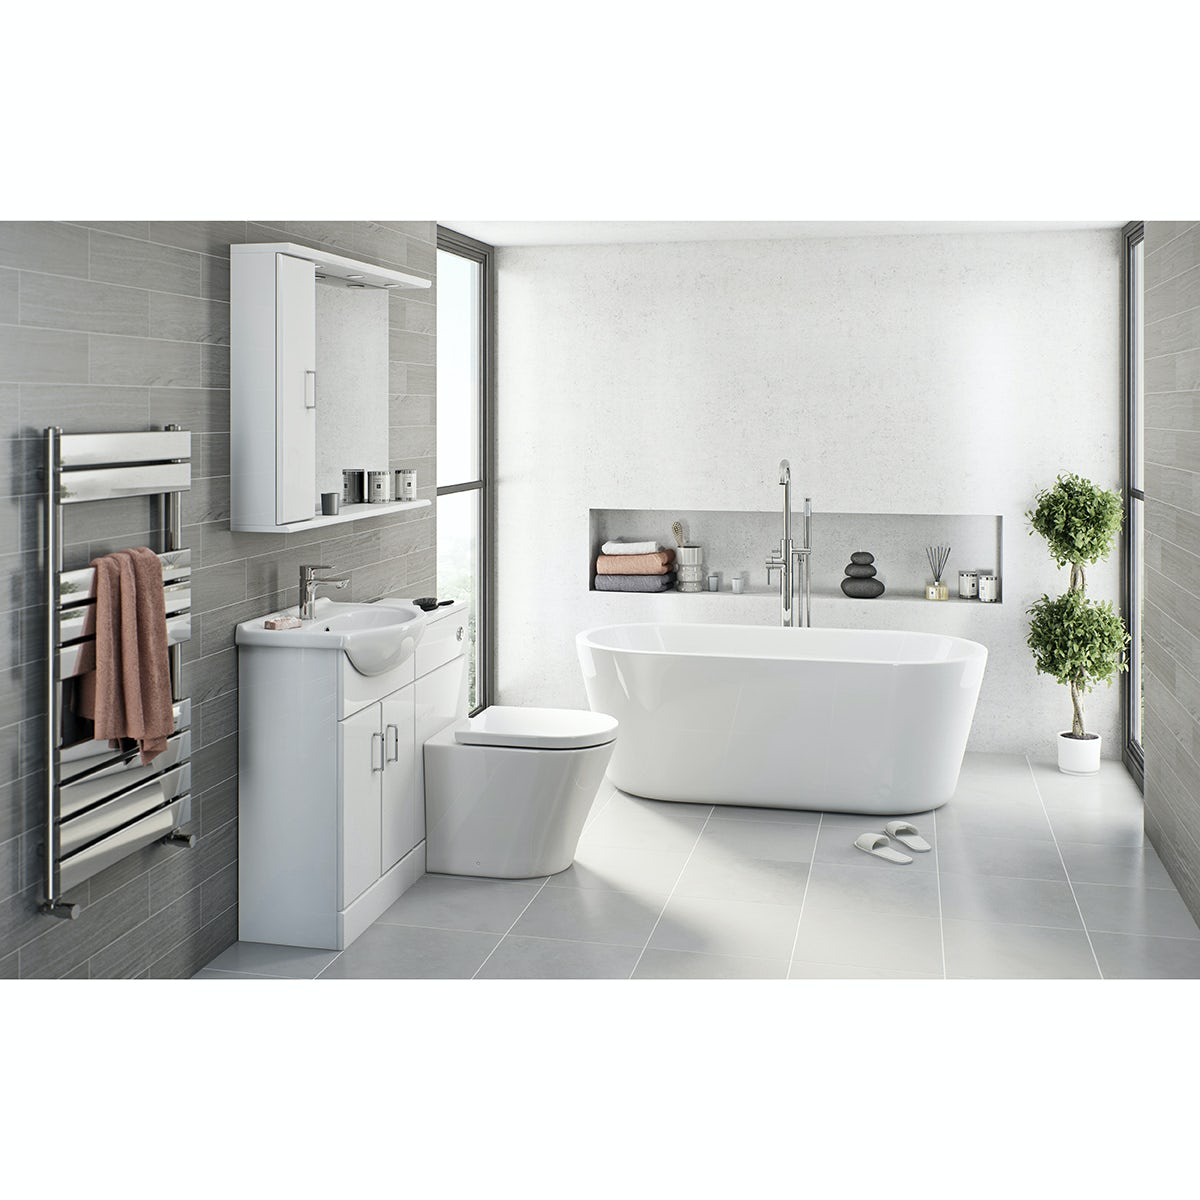 Orchard Eden white bathroom suite with contemporary freestanding bath